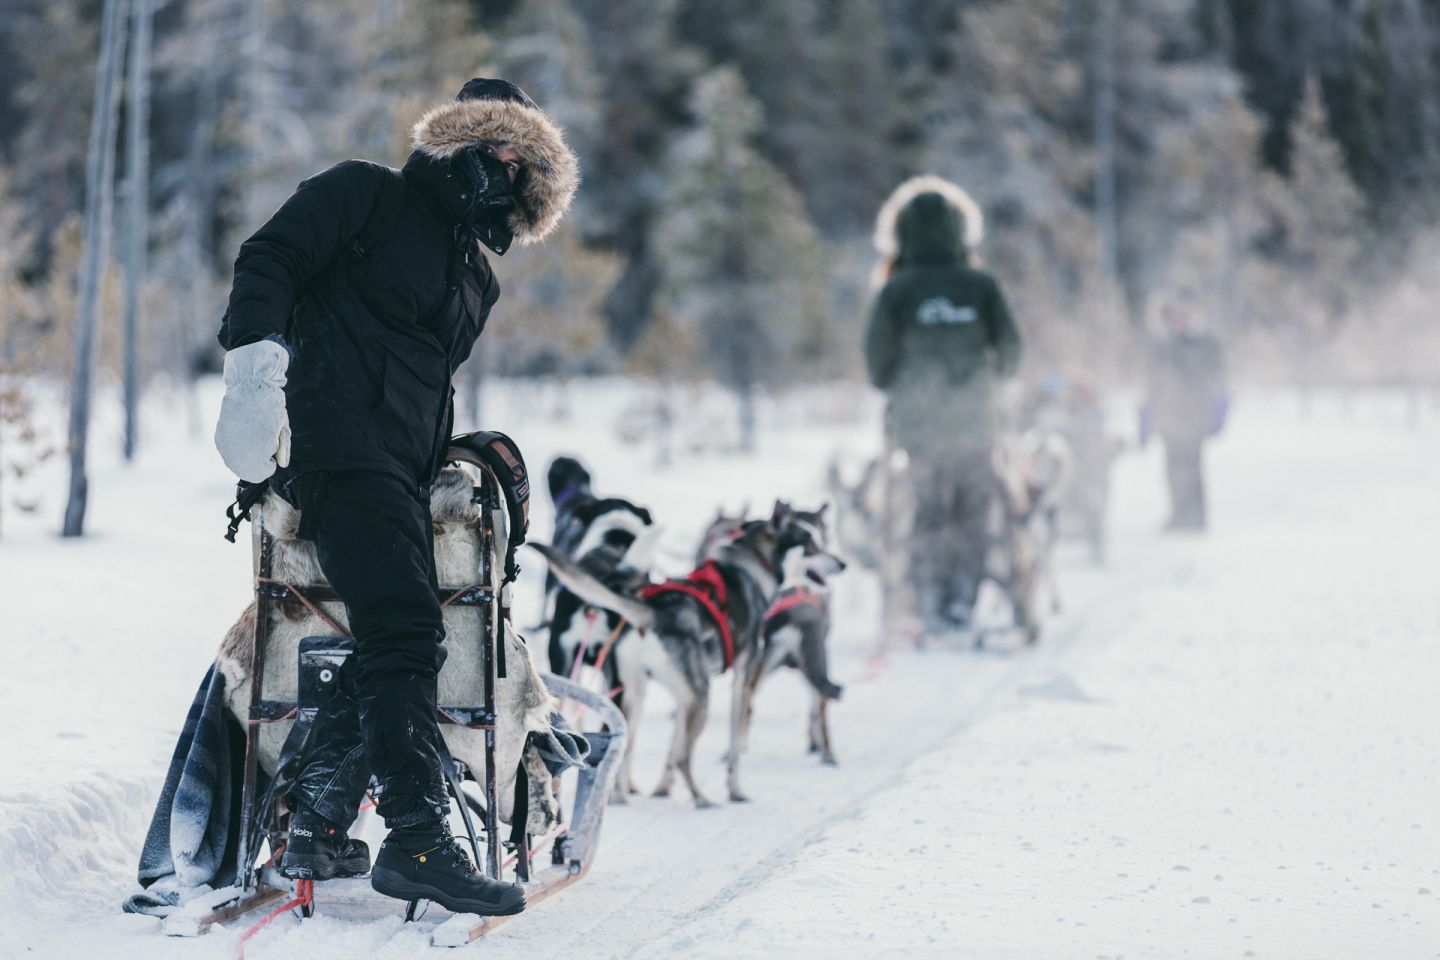 Husky safari in Levi, Finland